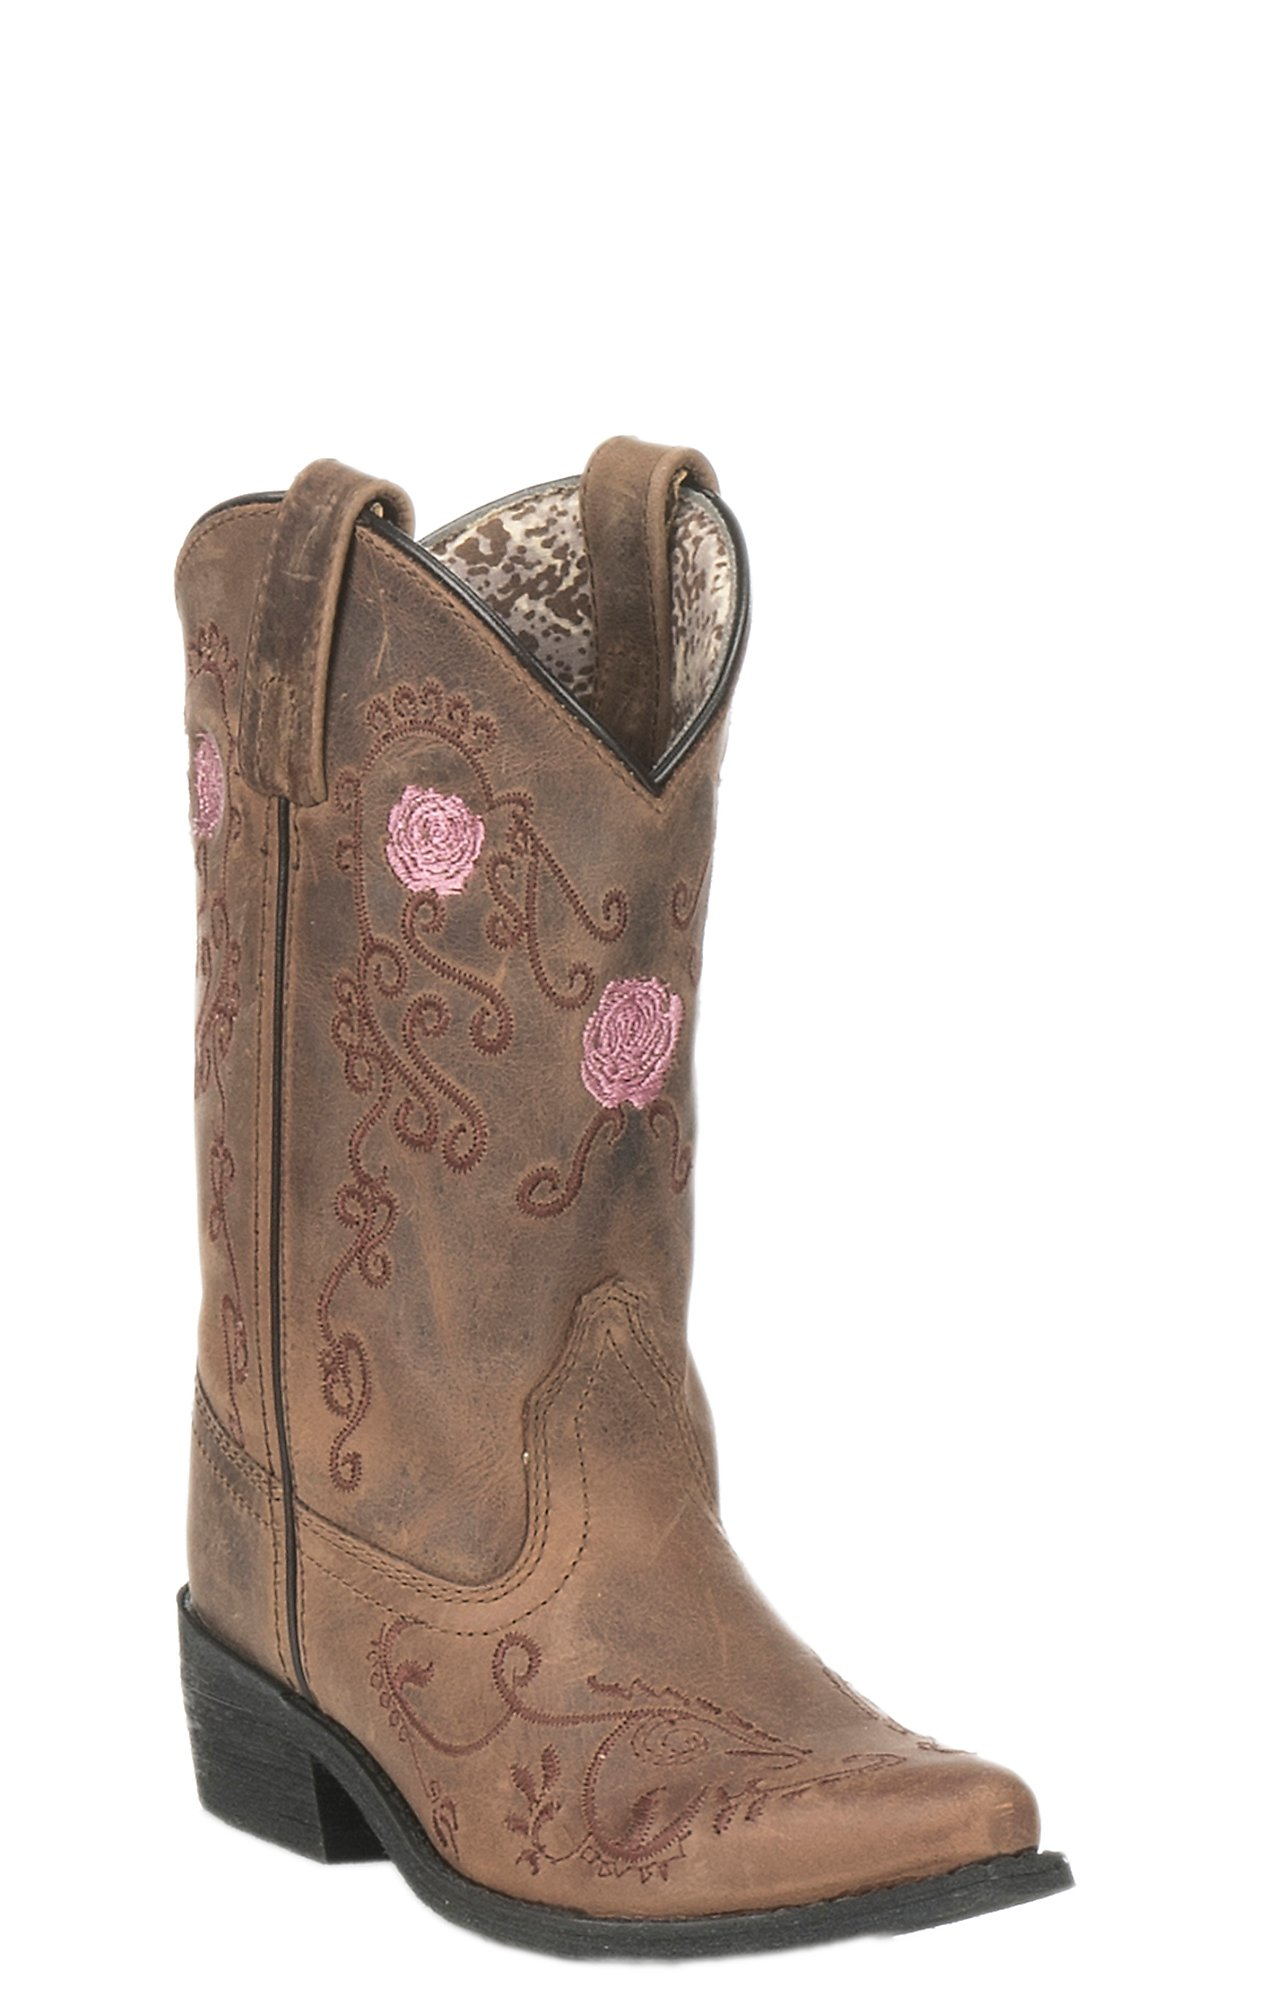 Smoky Mountain Kids Antique Tan with Pink Rose Embroidery Snip Toe Western  Boots 19ed6af01ef